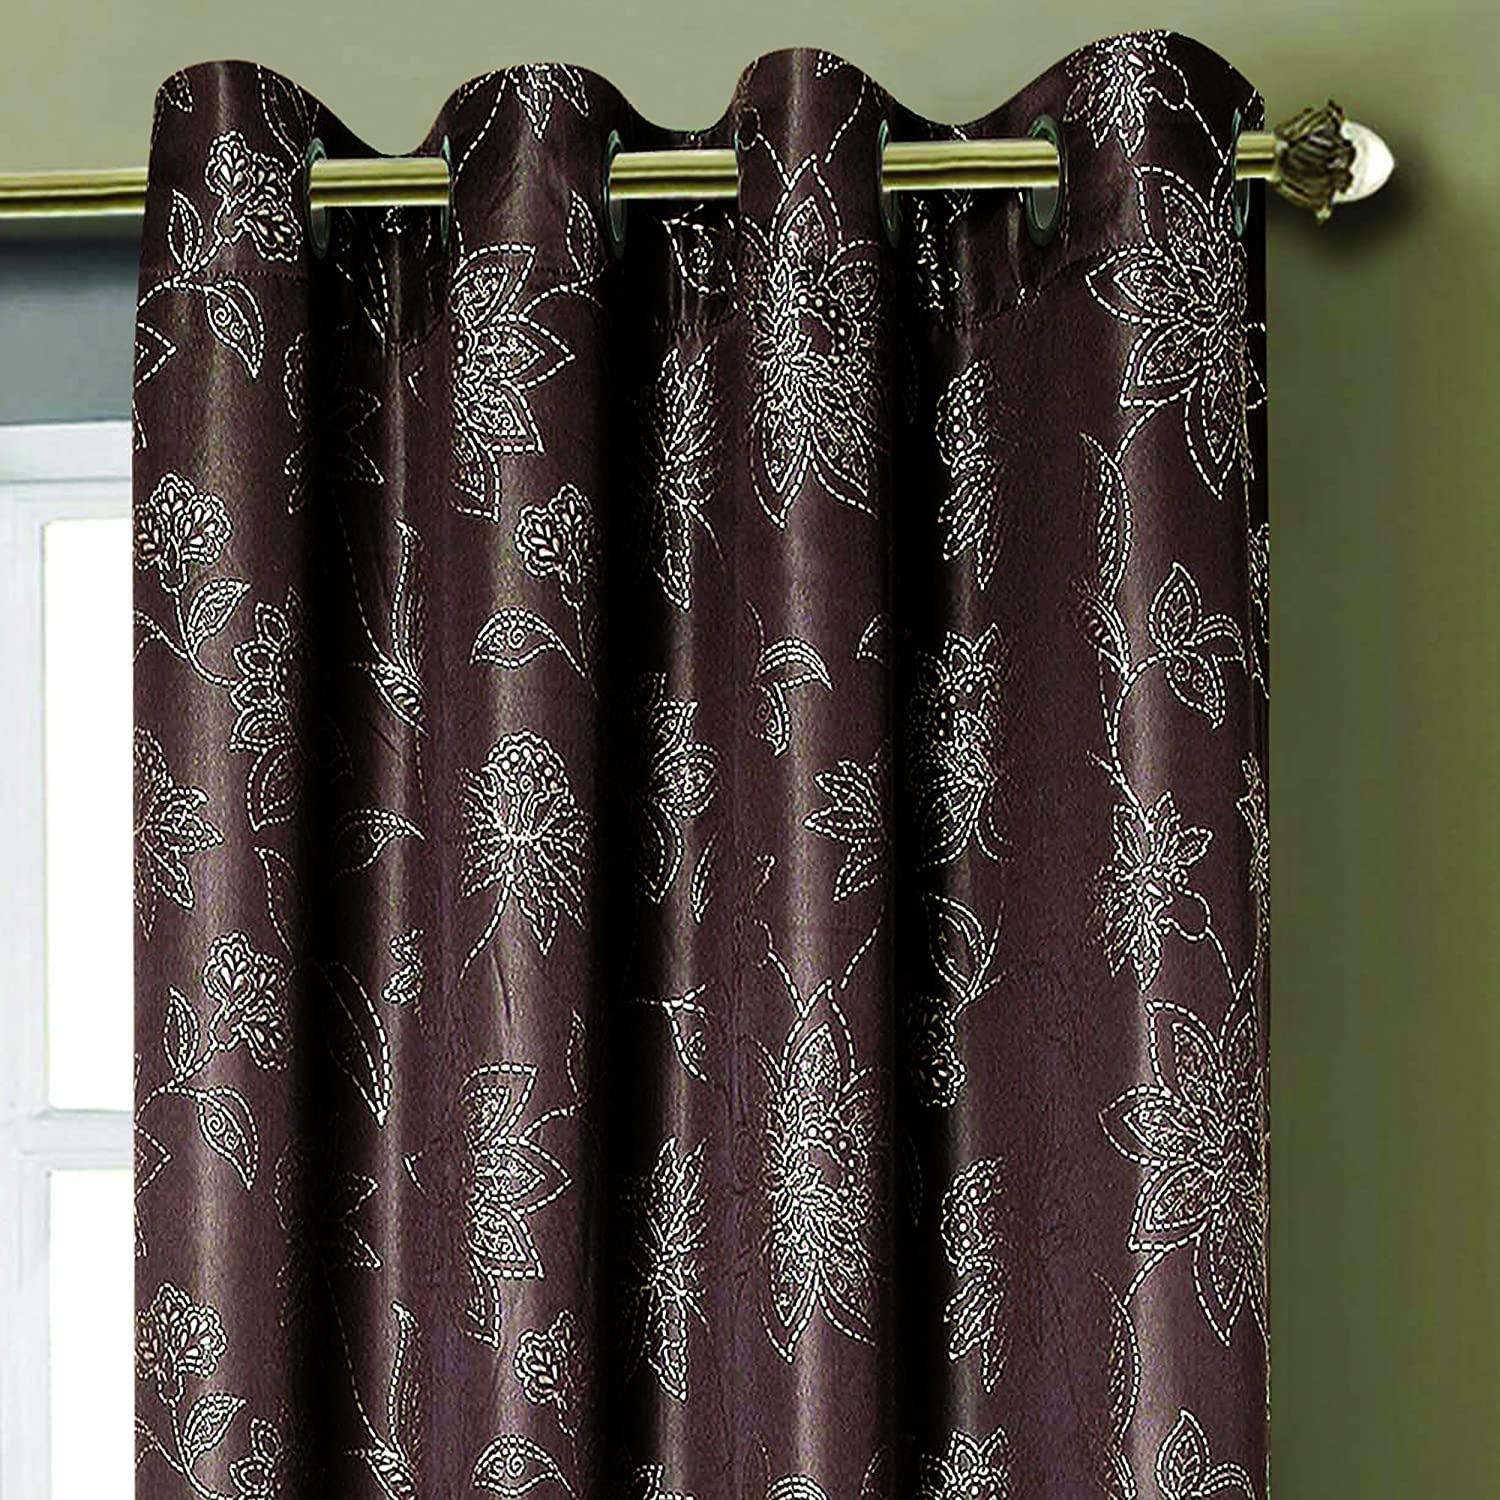 Window Elements Cortina Danica Con Ojales Extraanchos Jacquard